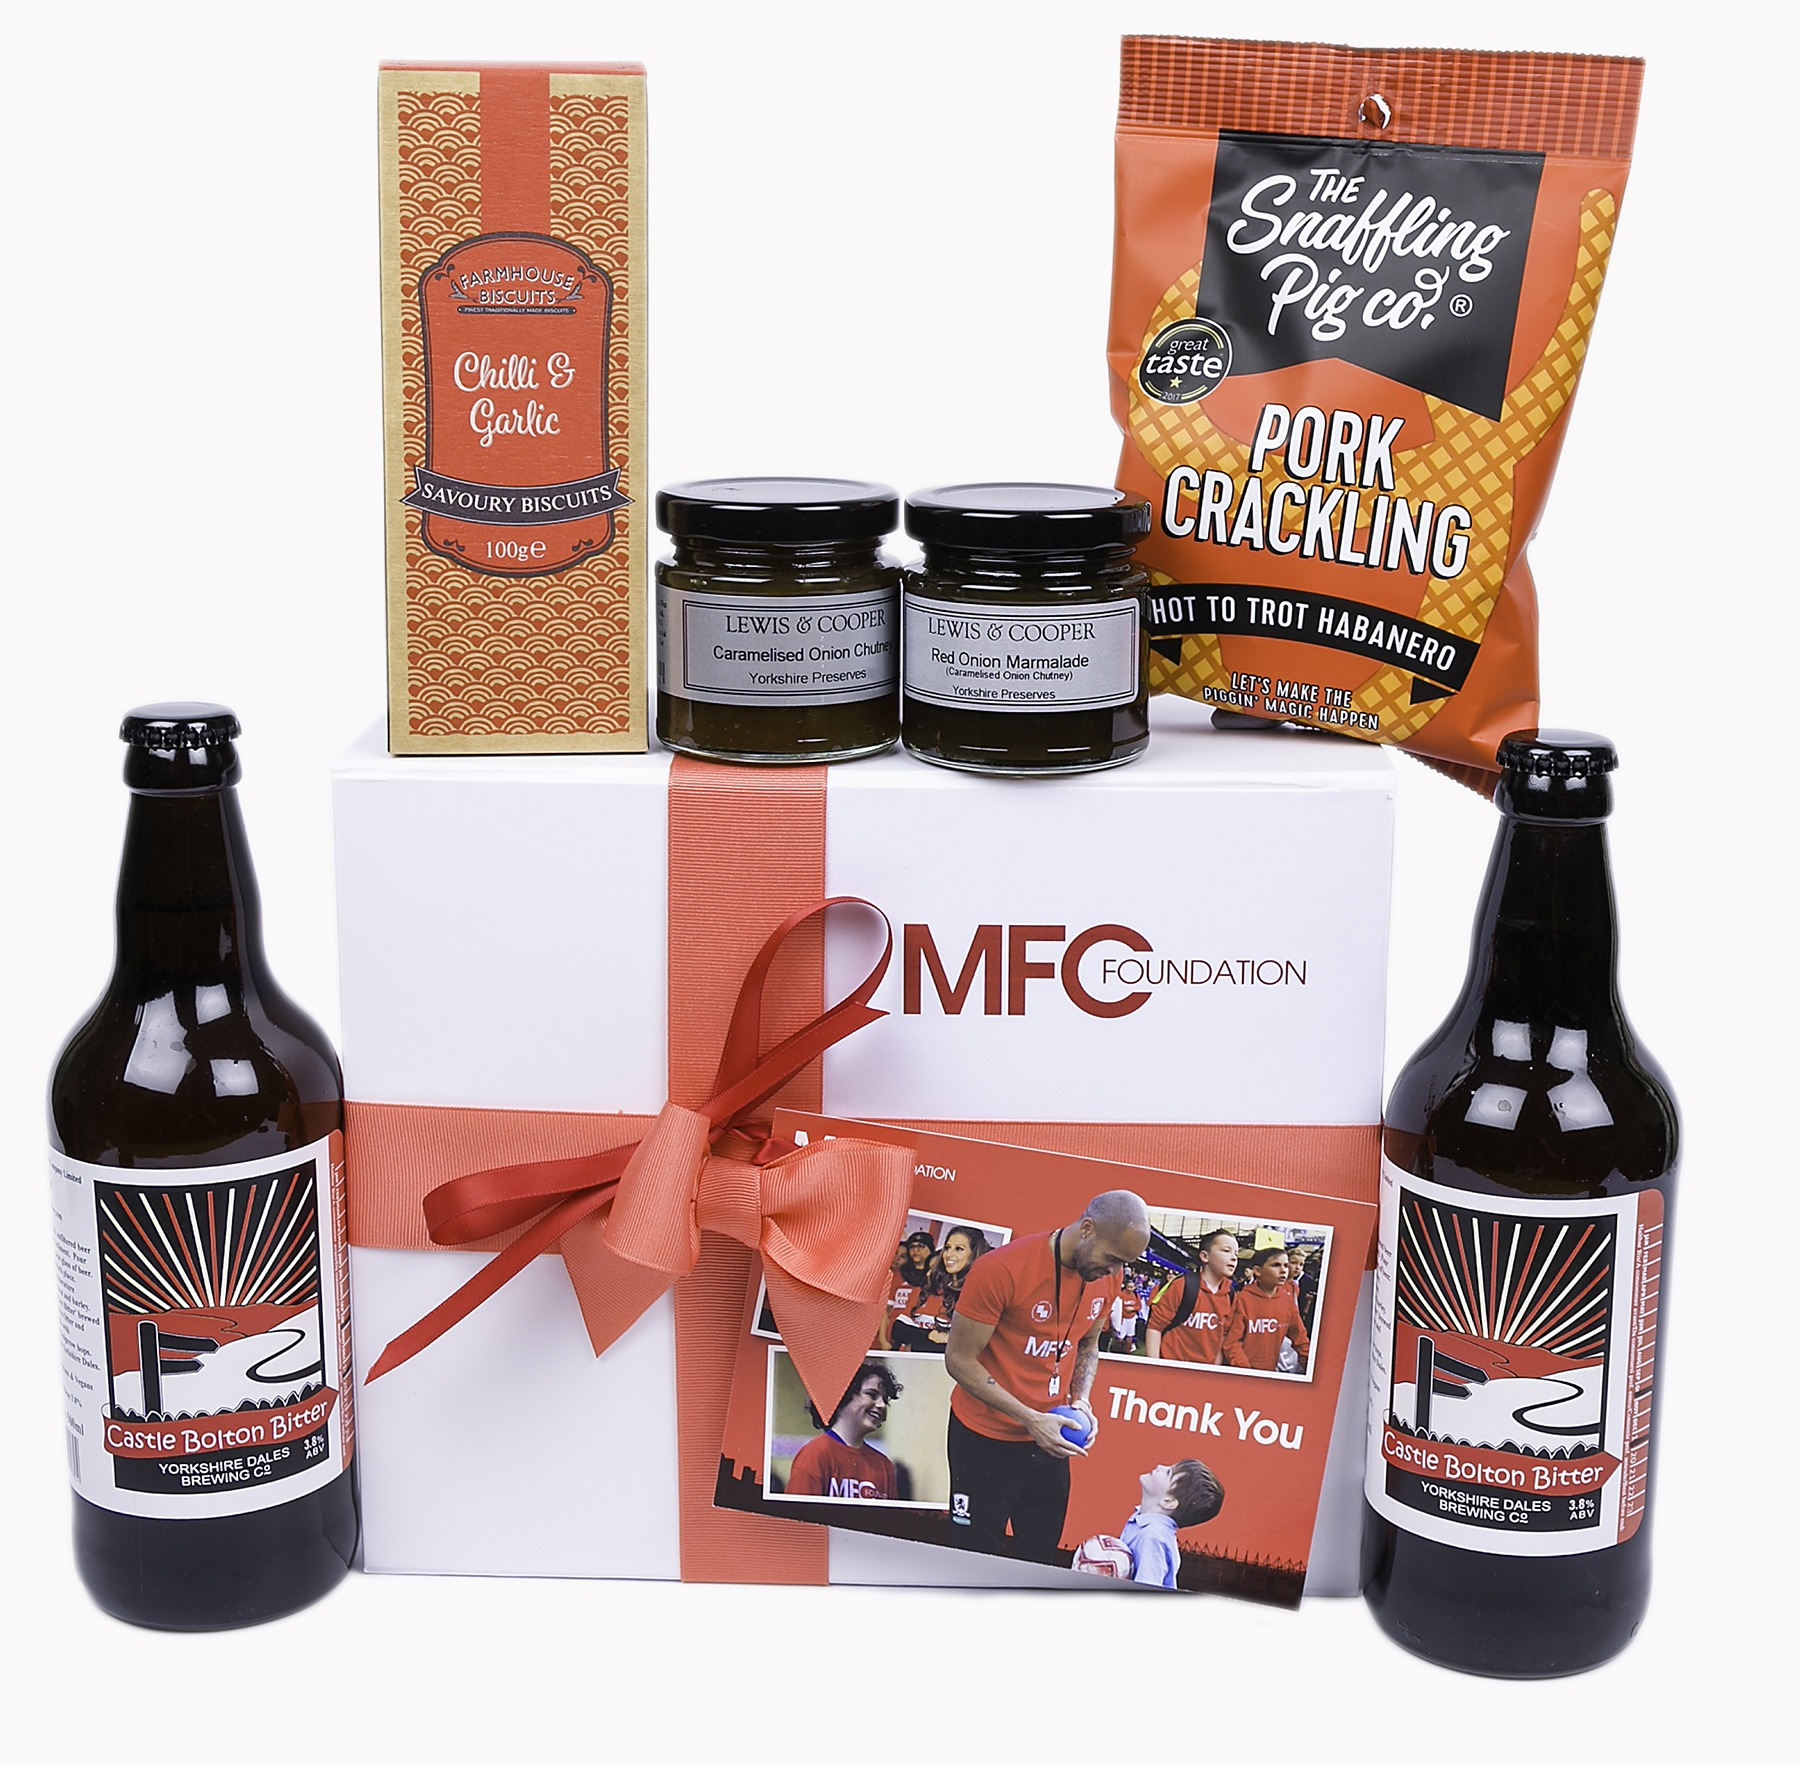 NEW MFC GIFT BOX IS EVERY DAD'S DELIGHT